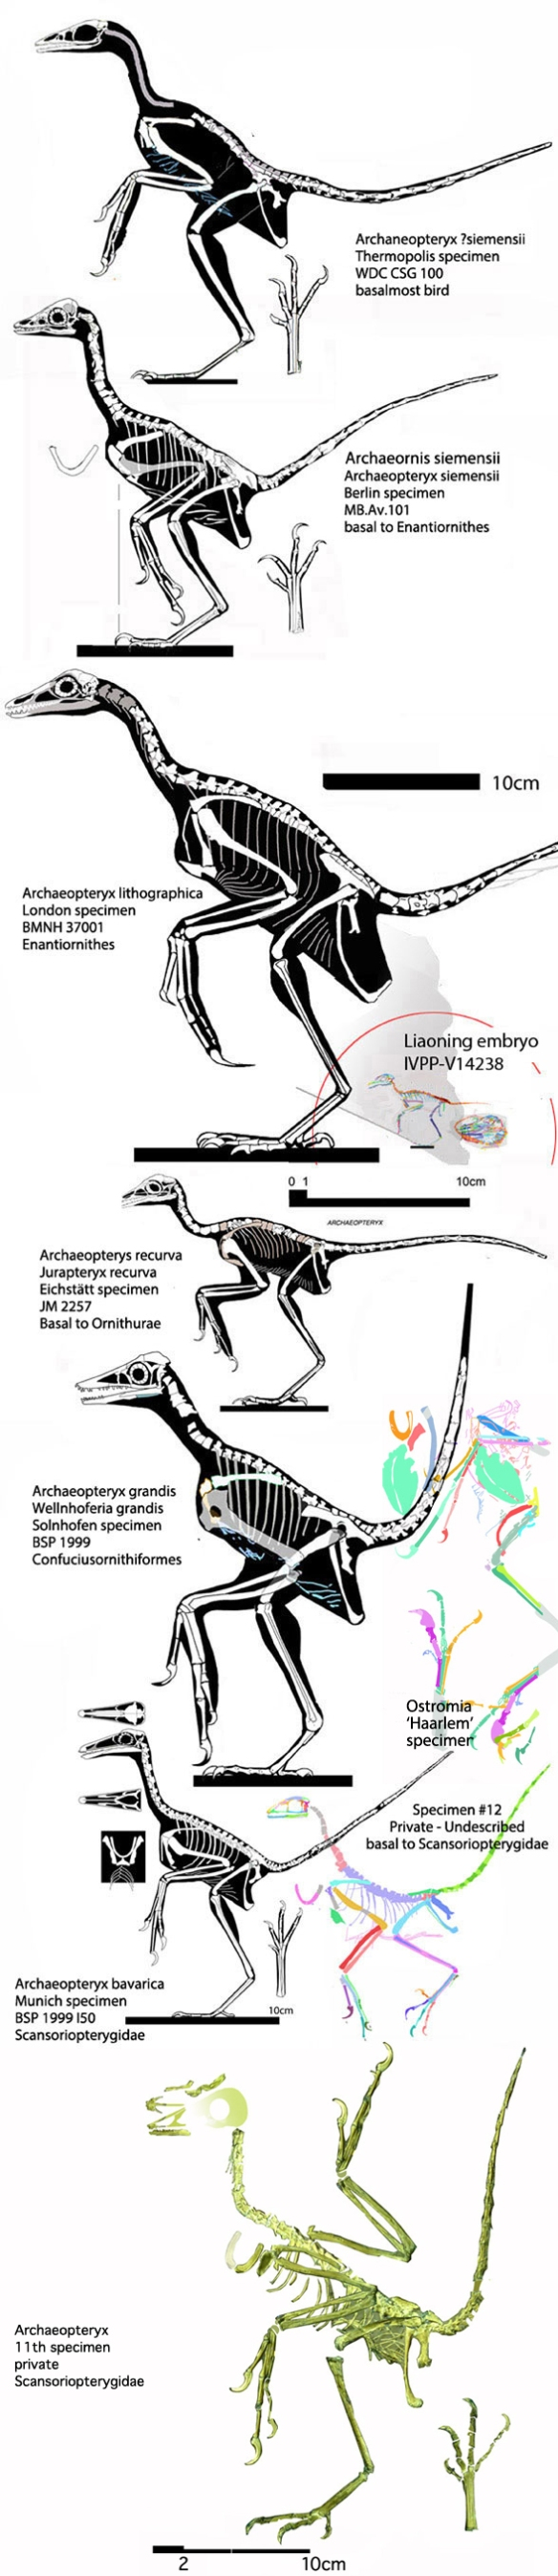 Figure 3. Several Solnhofen birds, including Archaeopteryx, compared to Ostromia to scale.